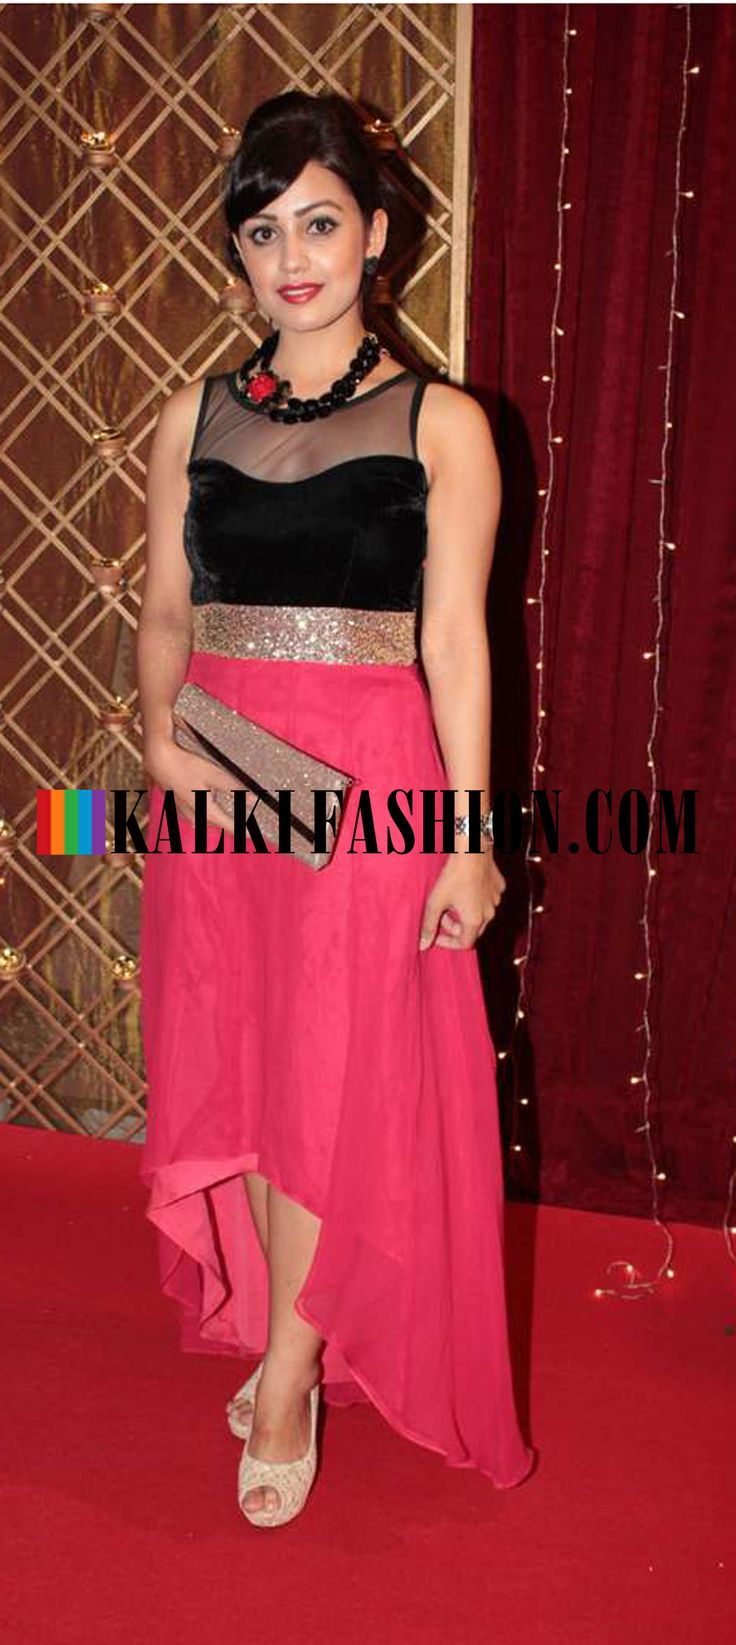 http://www.kalkifashion.com/  Esha kanasara in a pink tail cut gown attending  at Indian Telivision Awards 2013